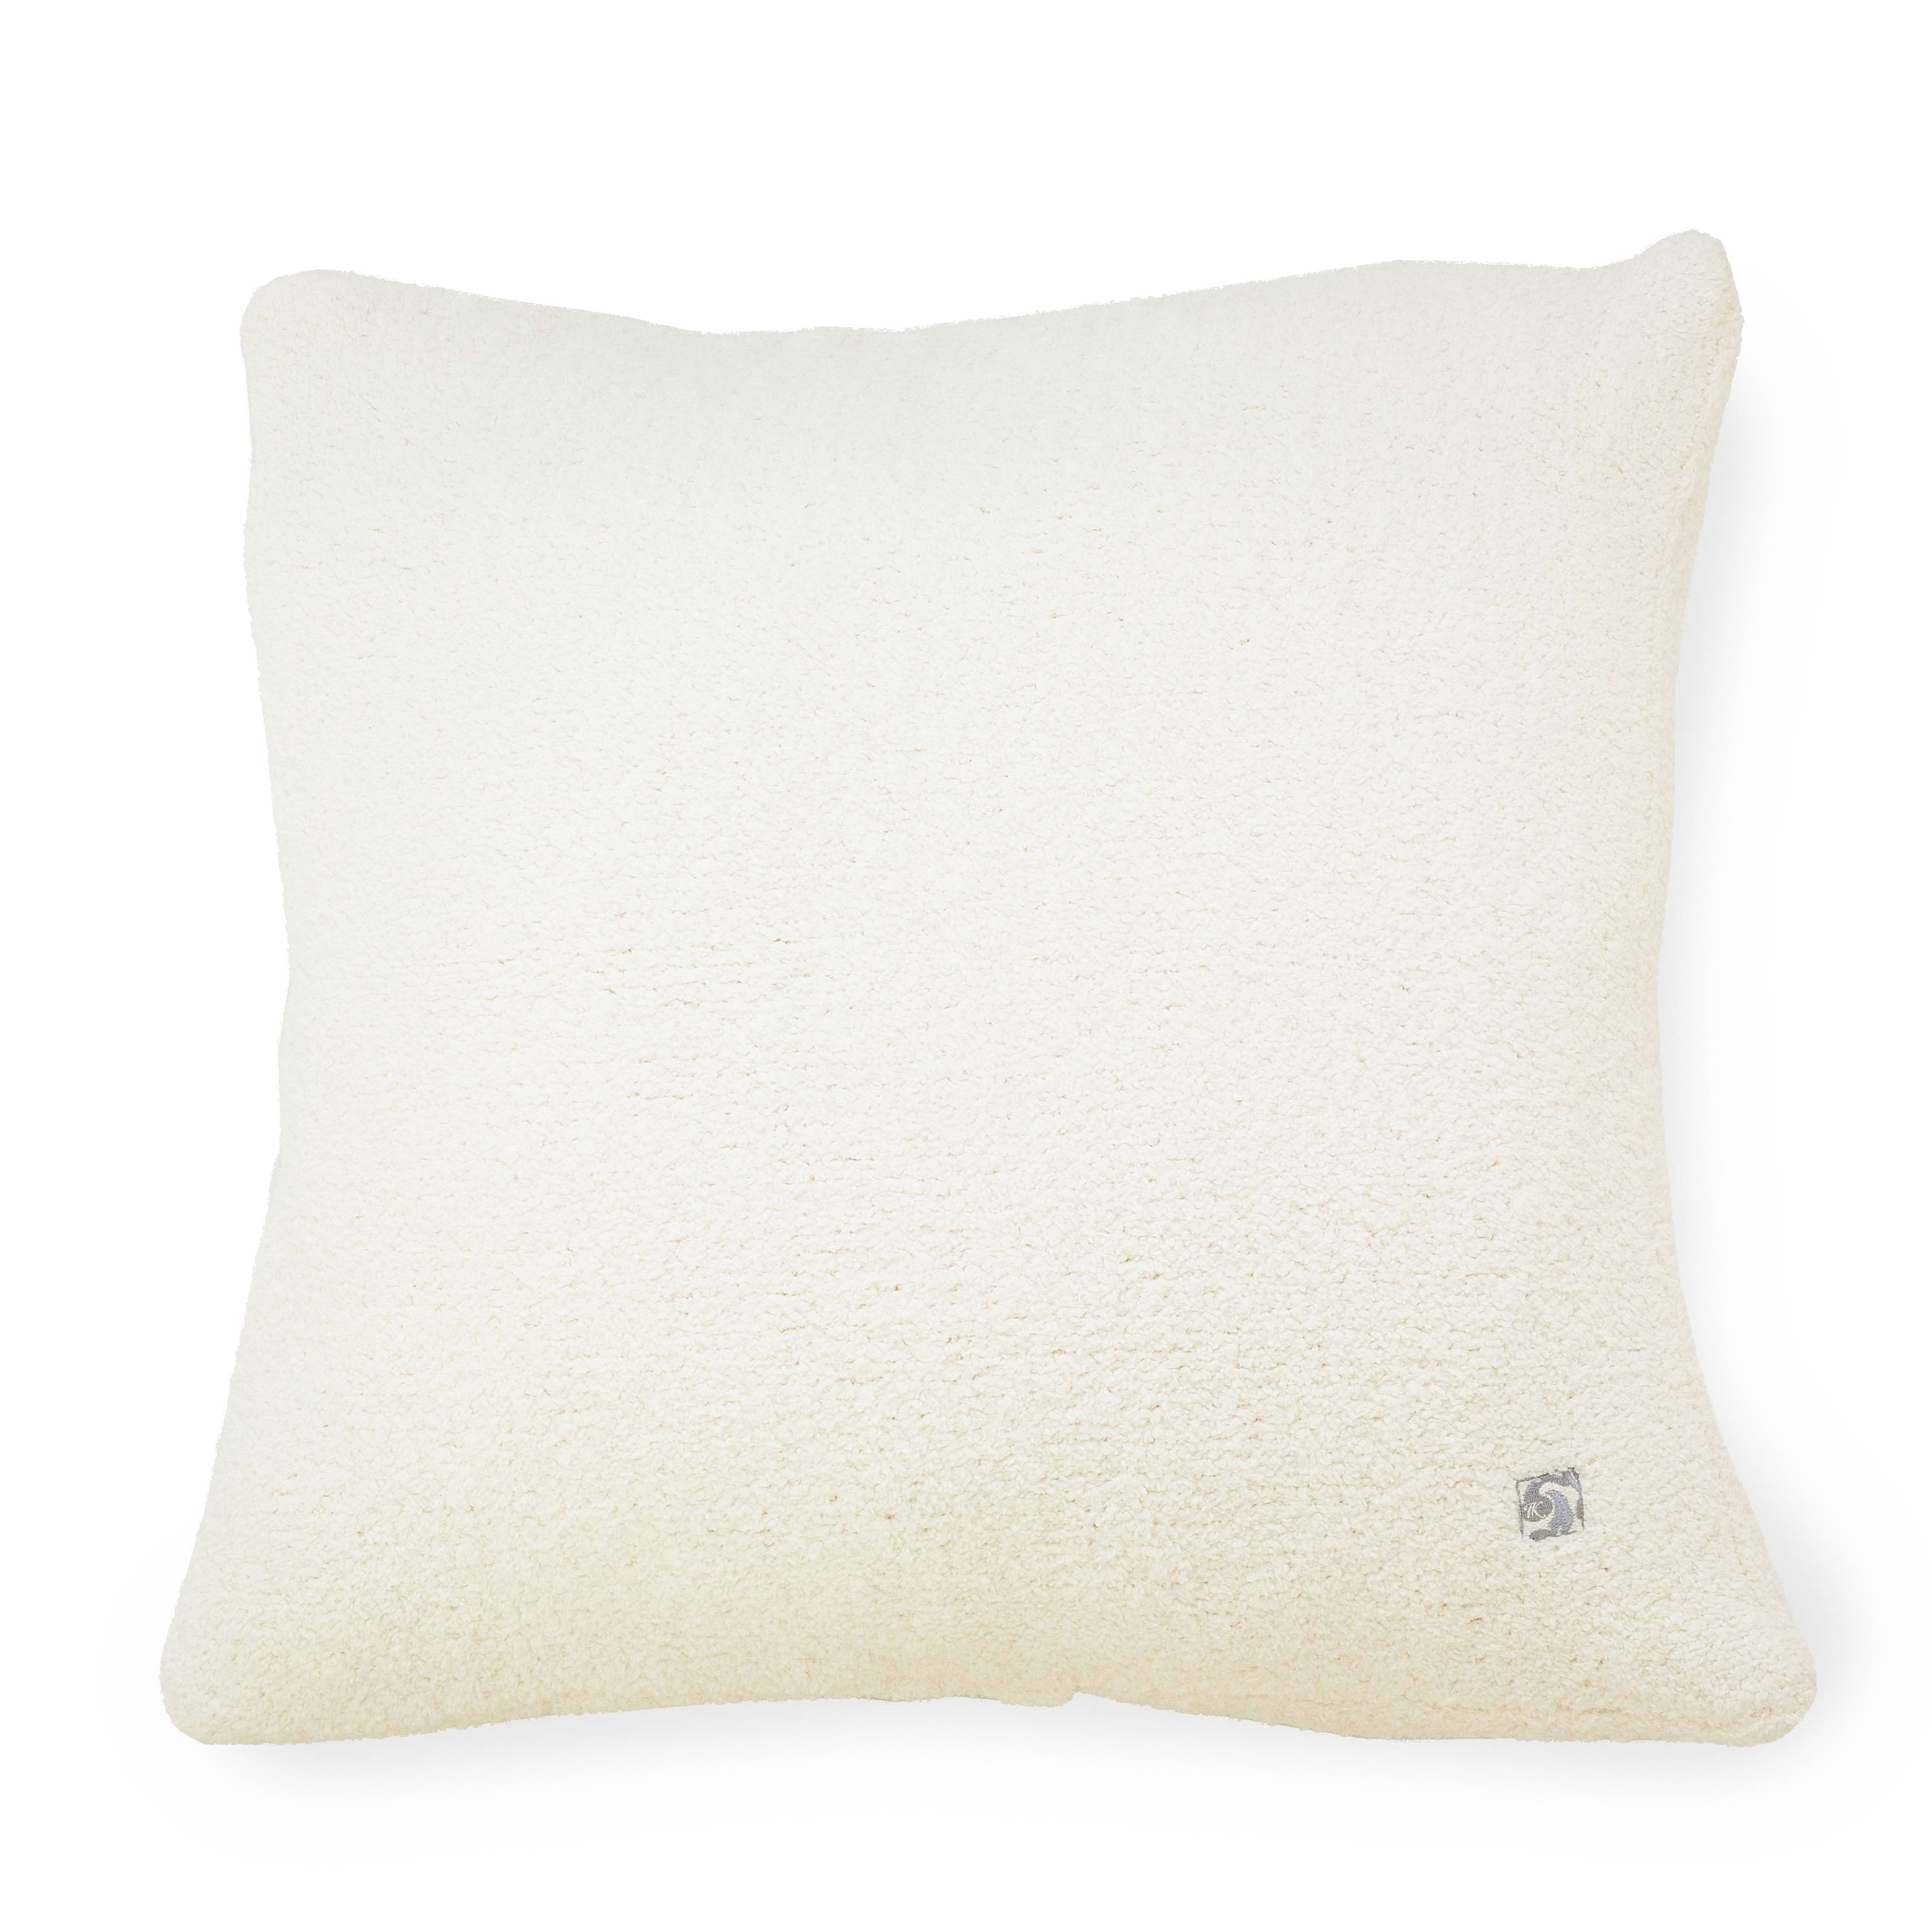 CUSHION COVER (BIG)